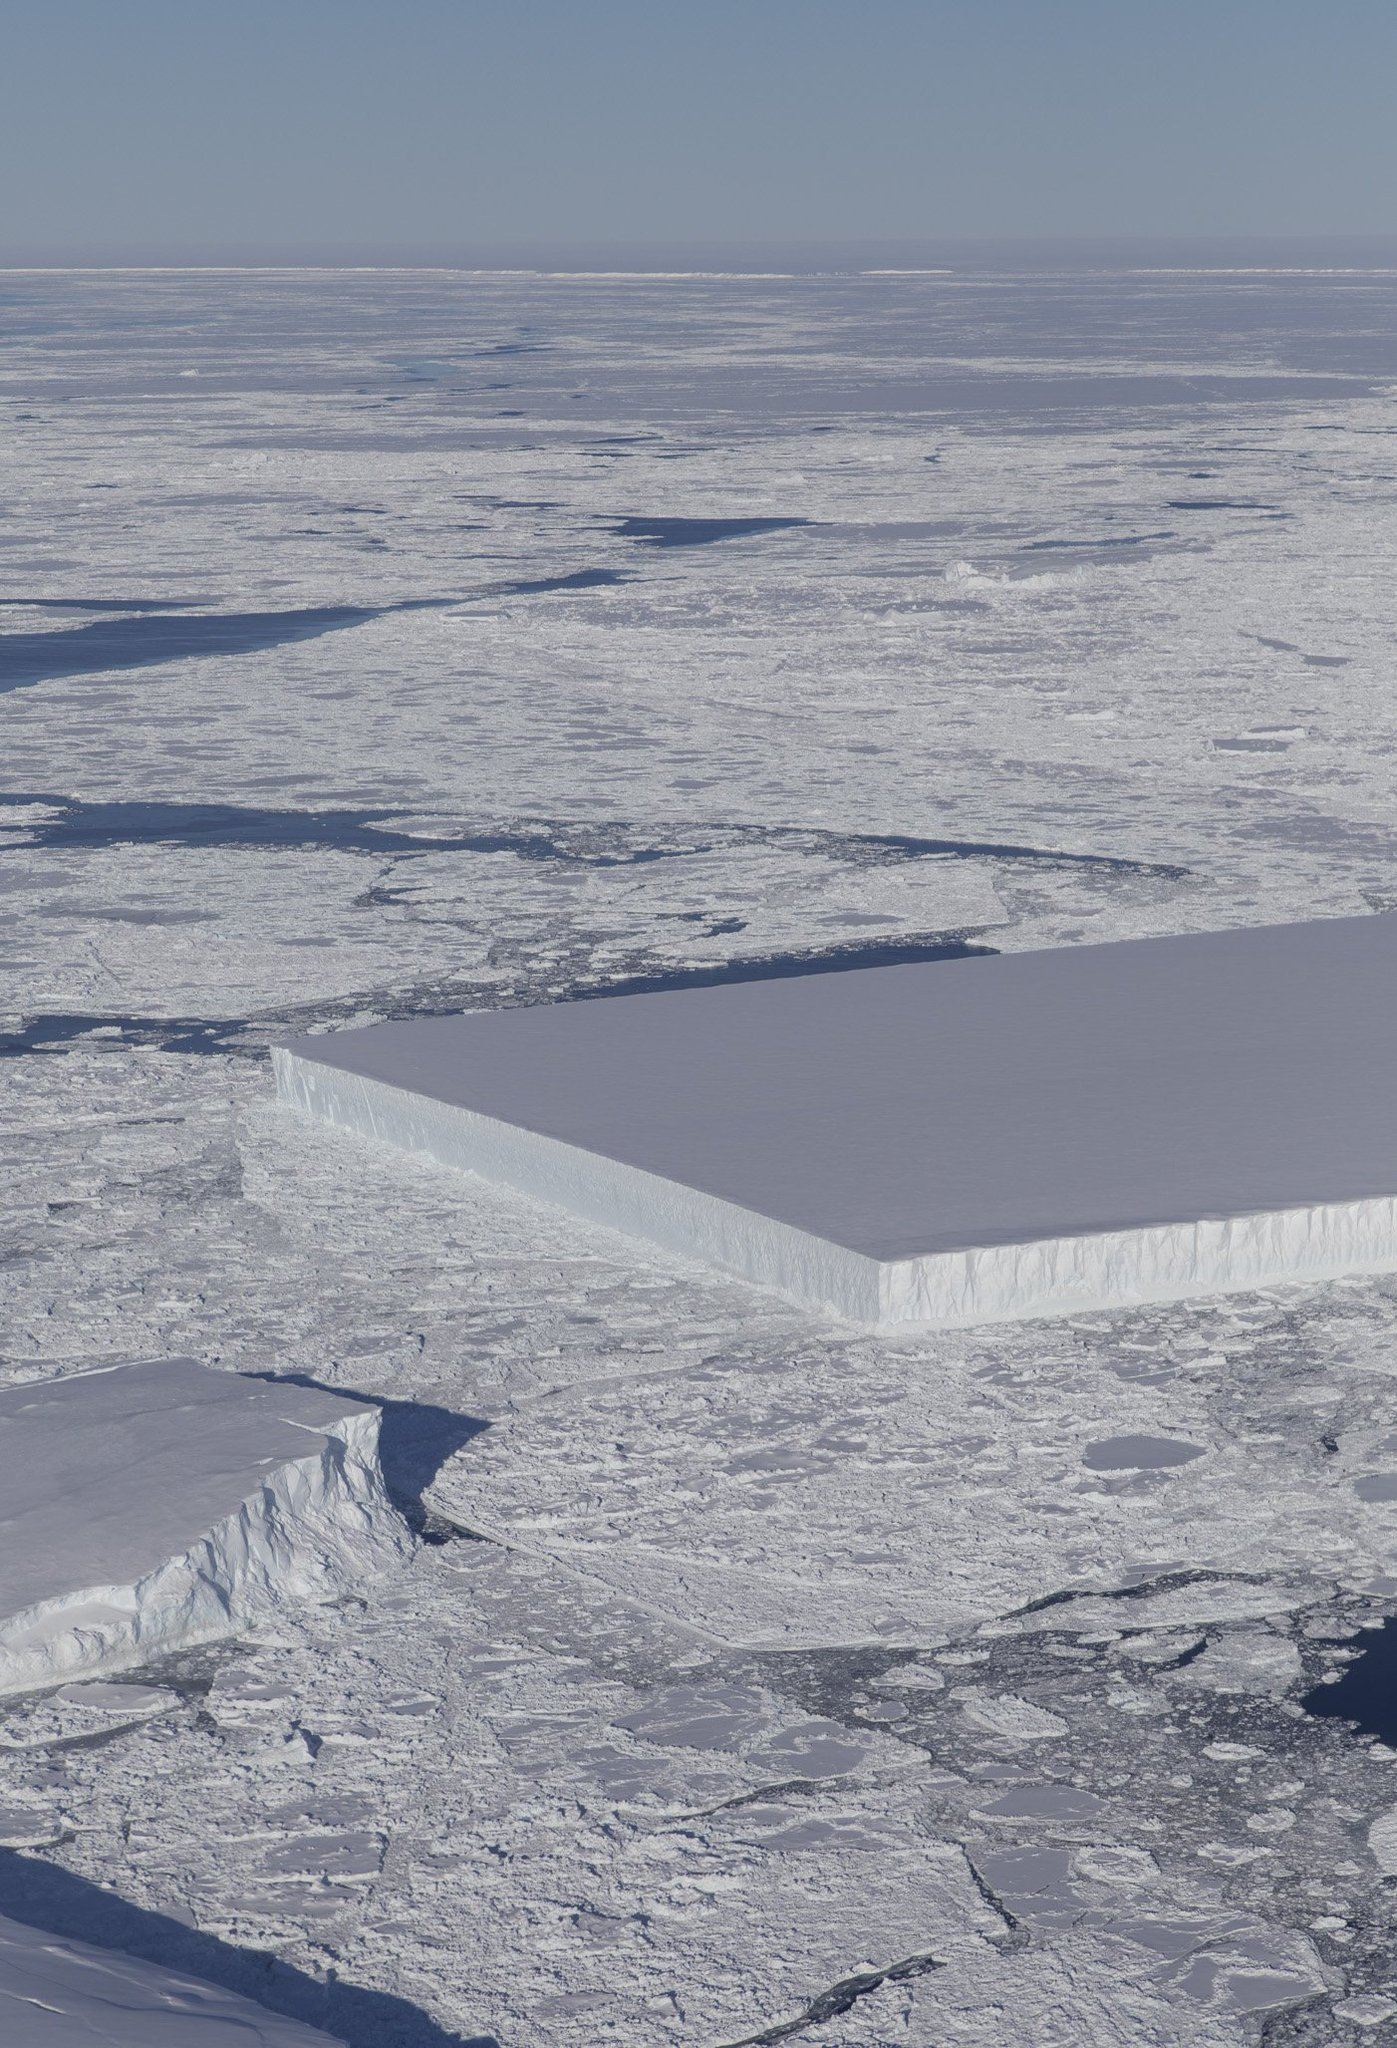 From yesterday's #IceBridge flight: A tabular iceberg can be seen on the right, floating among sea ice just off of the Larsen C ice shelf. The iceberg's sharp angles and flat surface indicate that it probably recently calved from the ice shelf. https://t.co/XhgTrf642Z